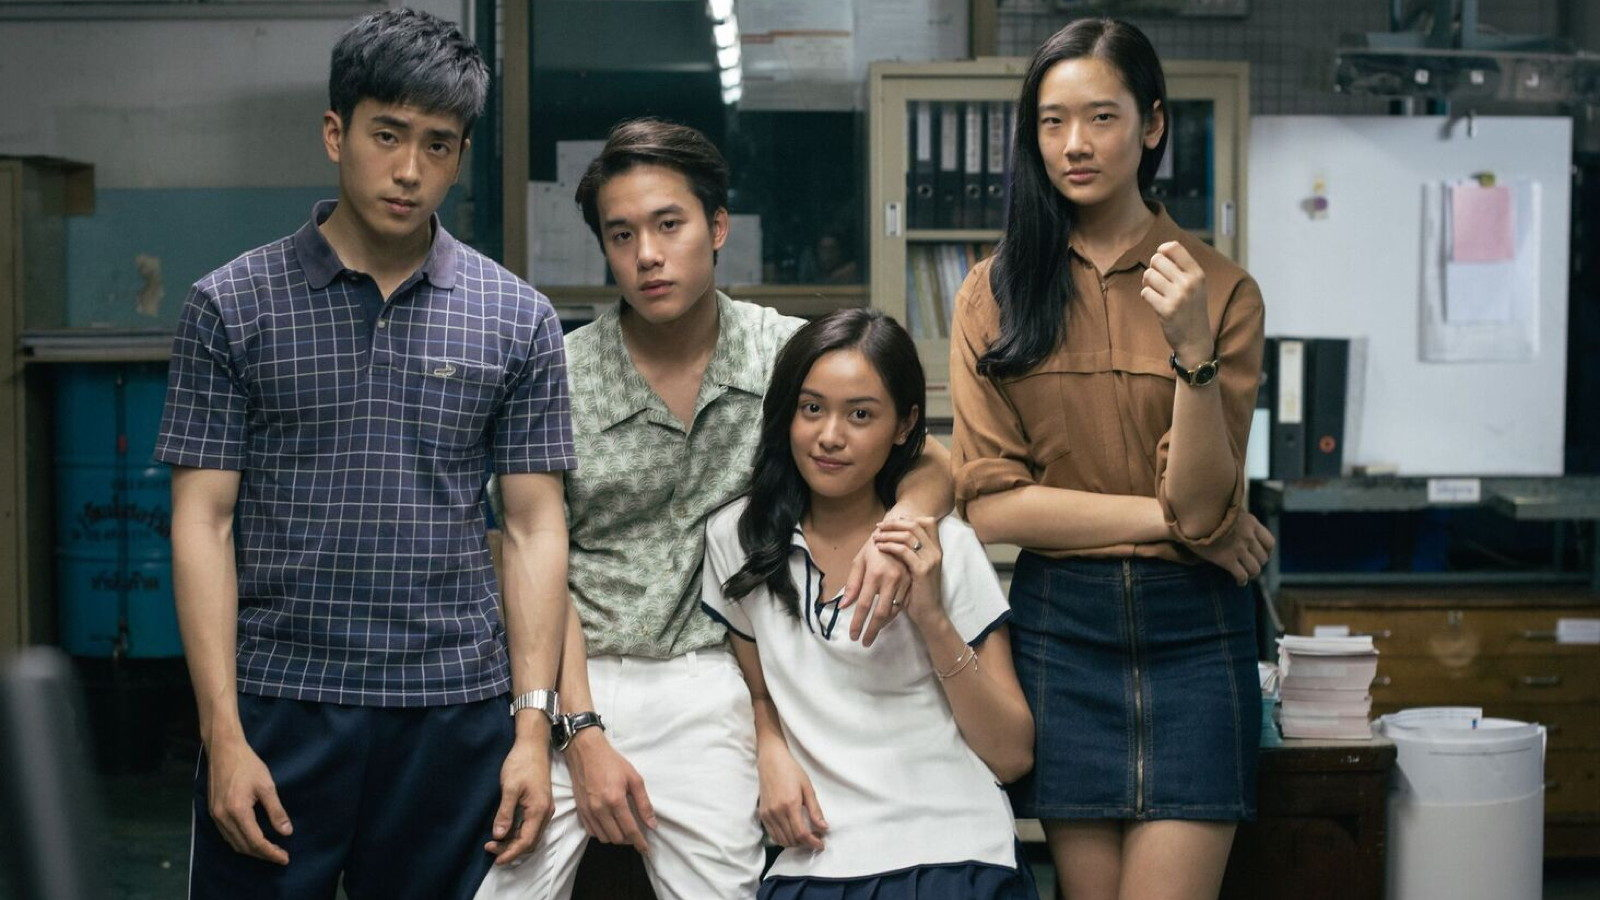 10 Tips To Help You Ace Your Exams, As Told By 'Bad Genius'